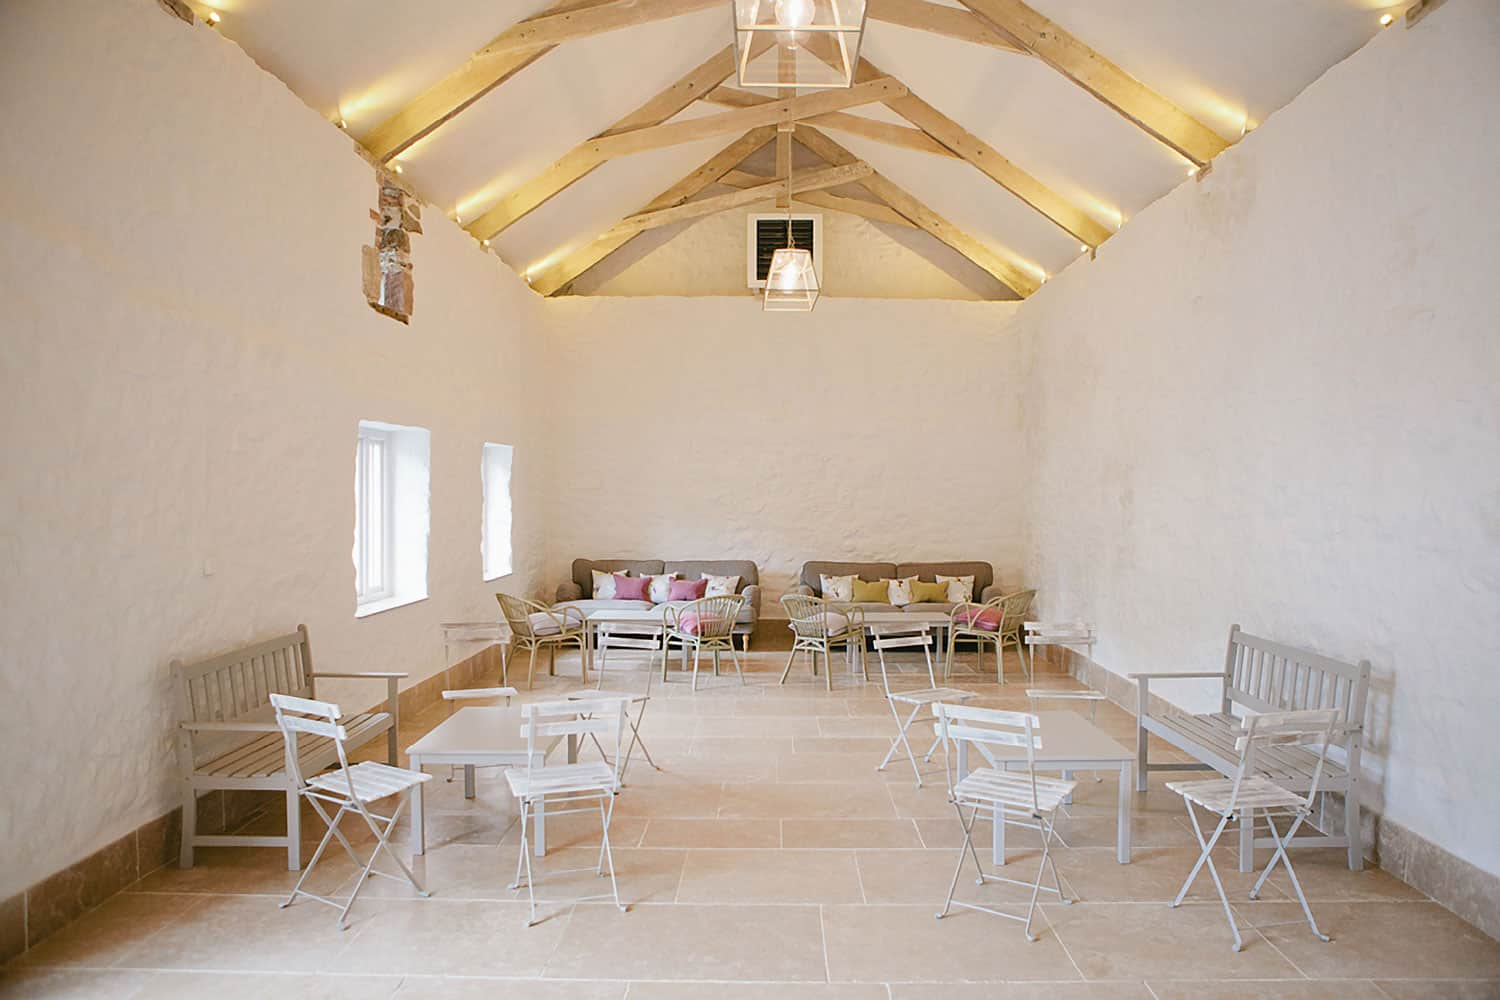 West Barn, Devon, The Great Barn, Wedding Venue